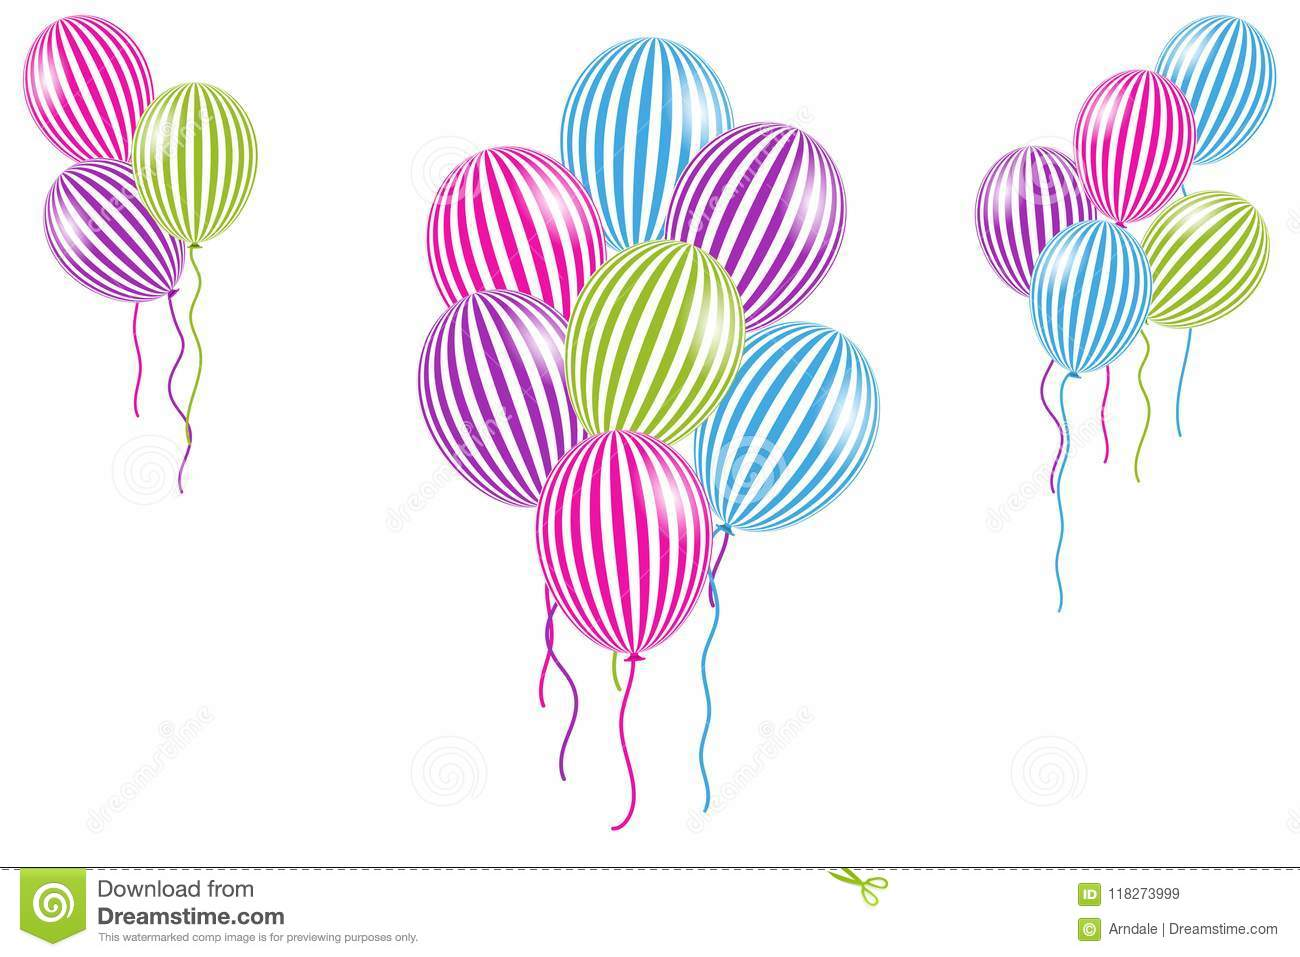 download multi colored striped helium balloons stock vector illustration of celebration happy